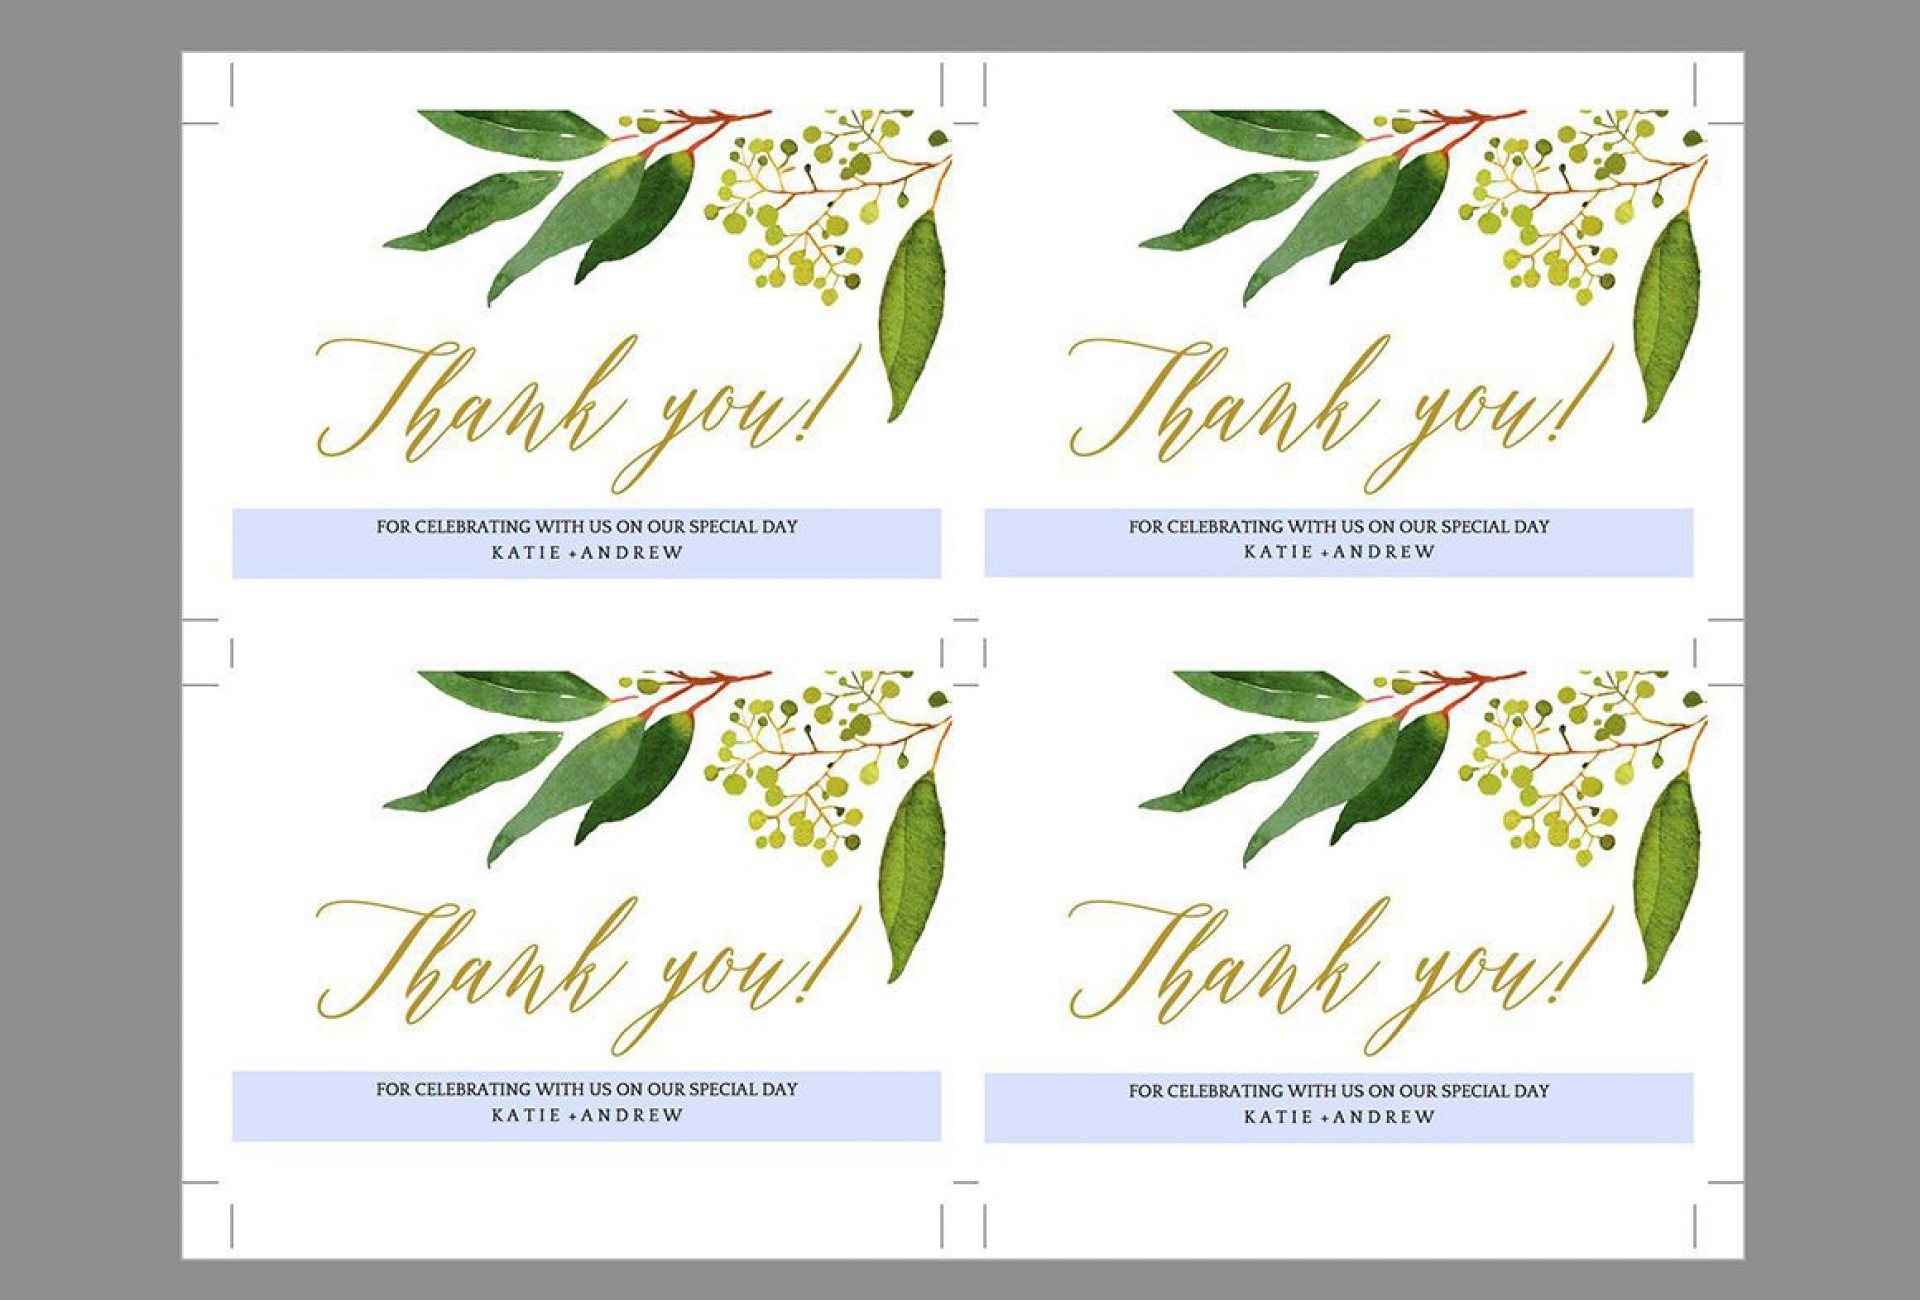 008 Simple Wedding Thank You Card Template Psd Image  Free1920